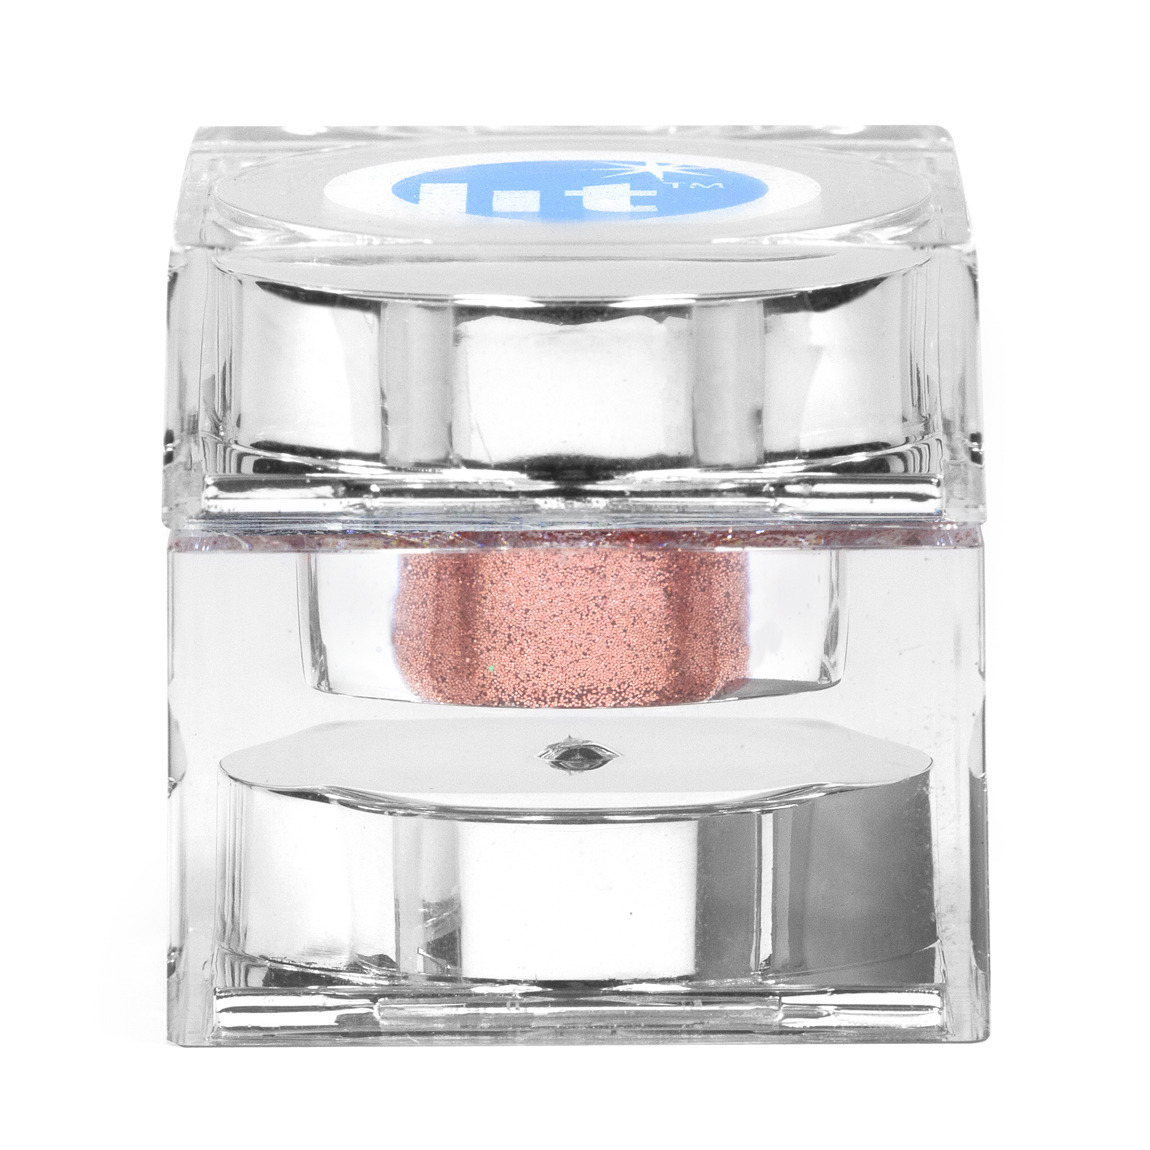 Lit Cosmetics Lit Glitter Oprah S2 (Solid) alternative view 1.